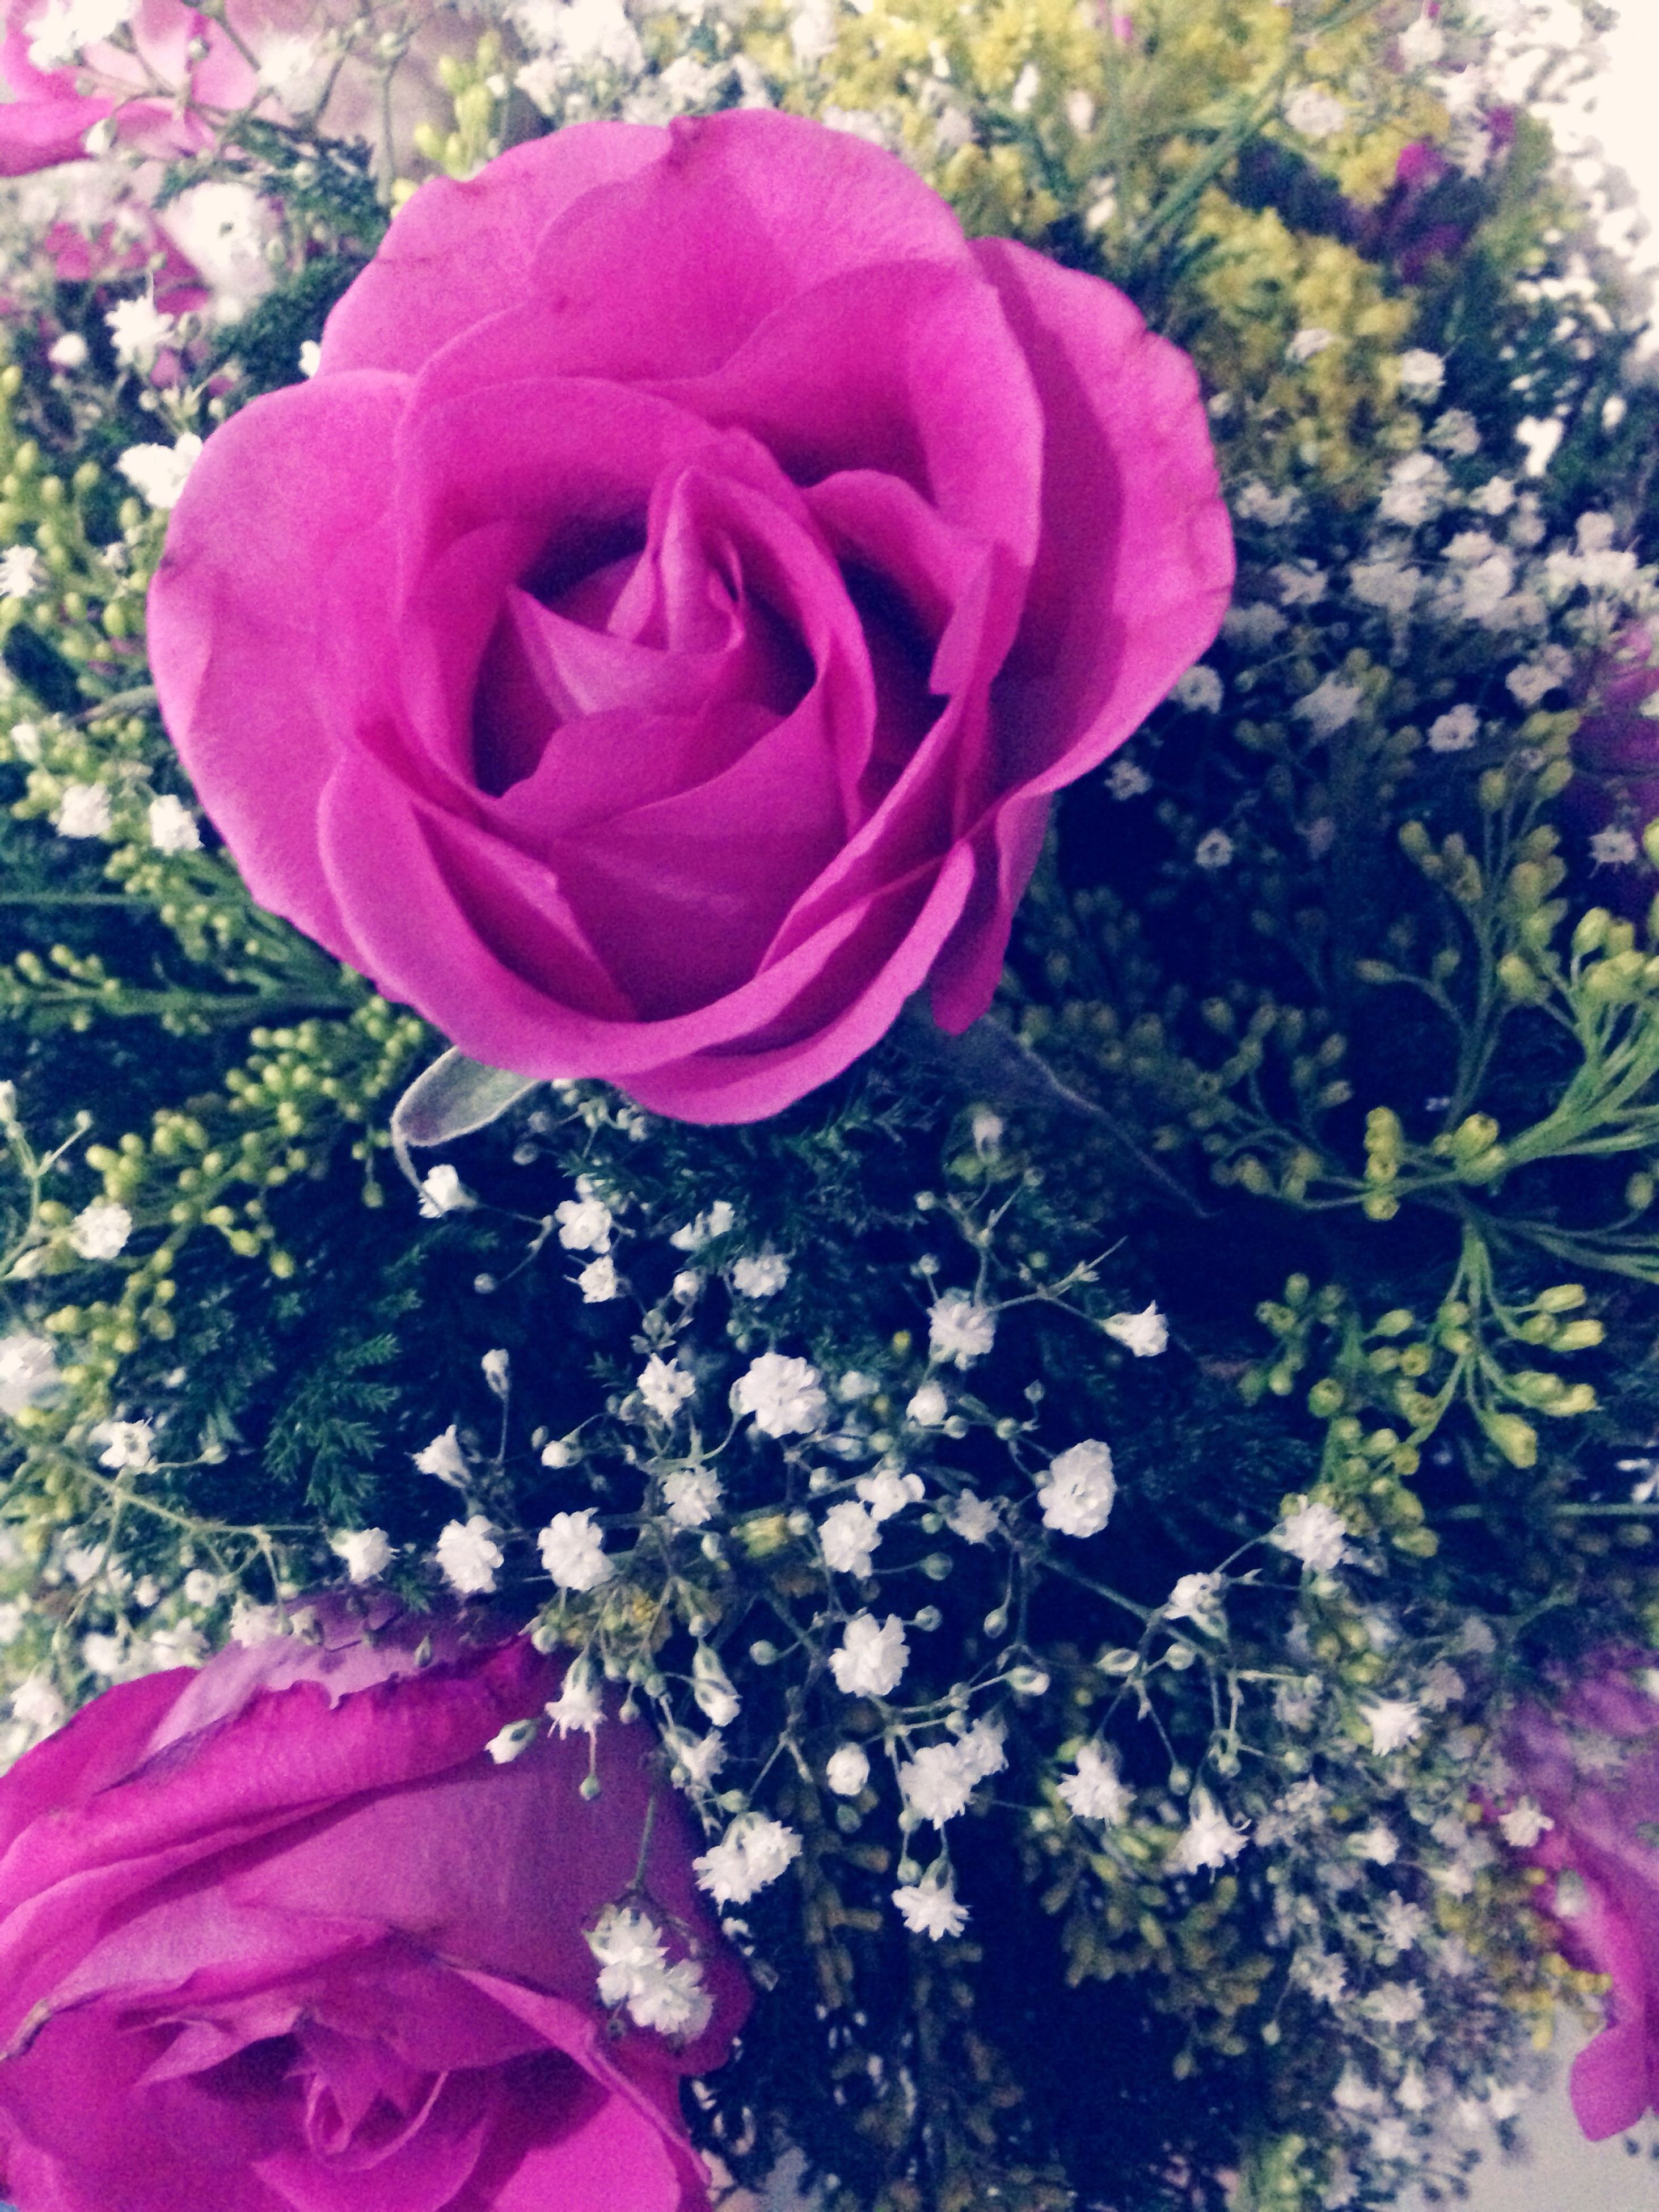 flower, petal, pink color, freshness, fragility, rose - flower, flower head, beauty in nature, growth, pink, nature, close-up, blooming, rose, in bloom, plant, outdoors, single flower, day, no people